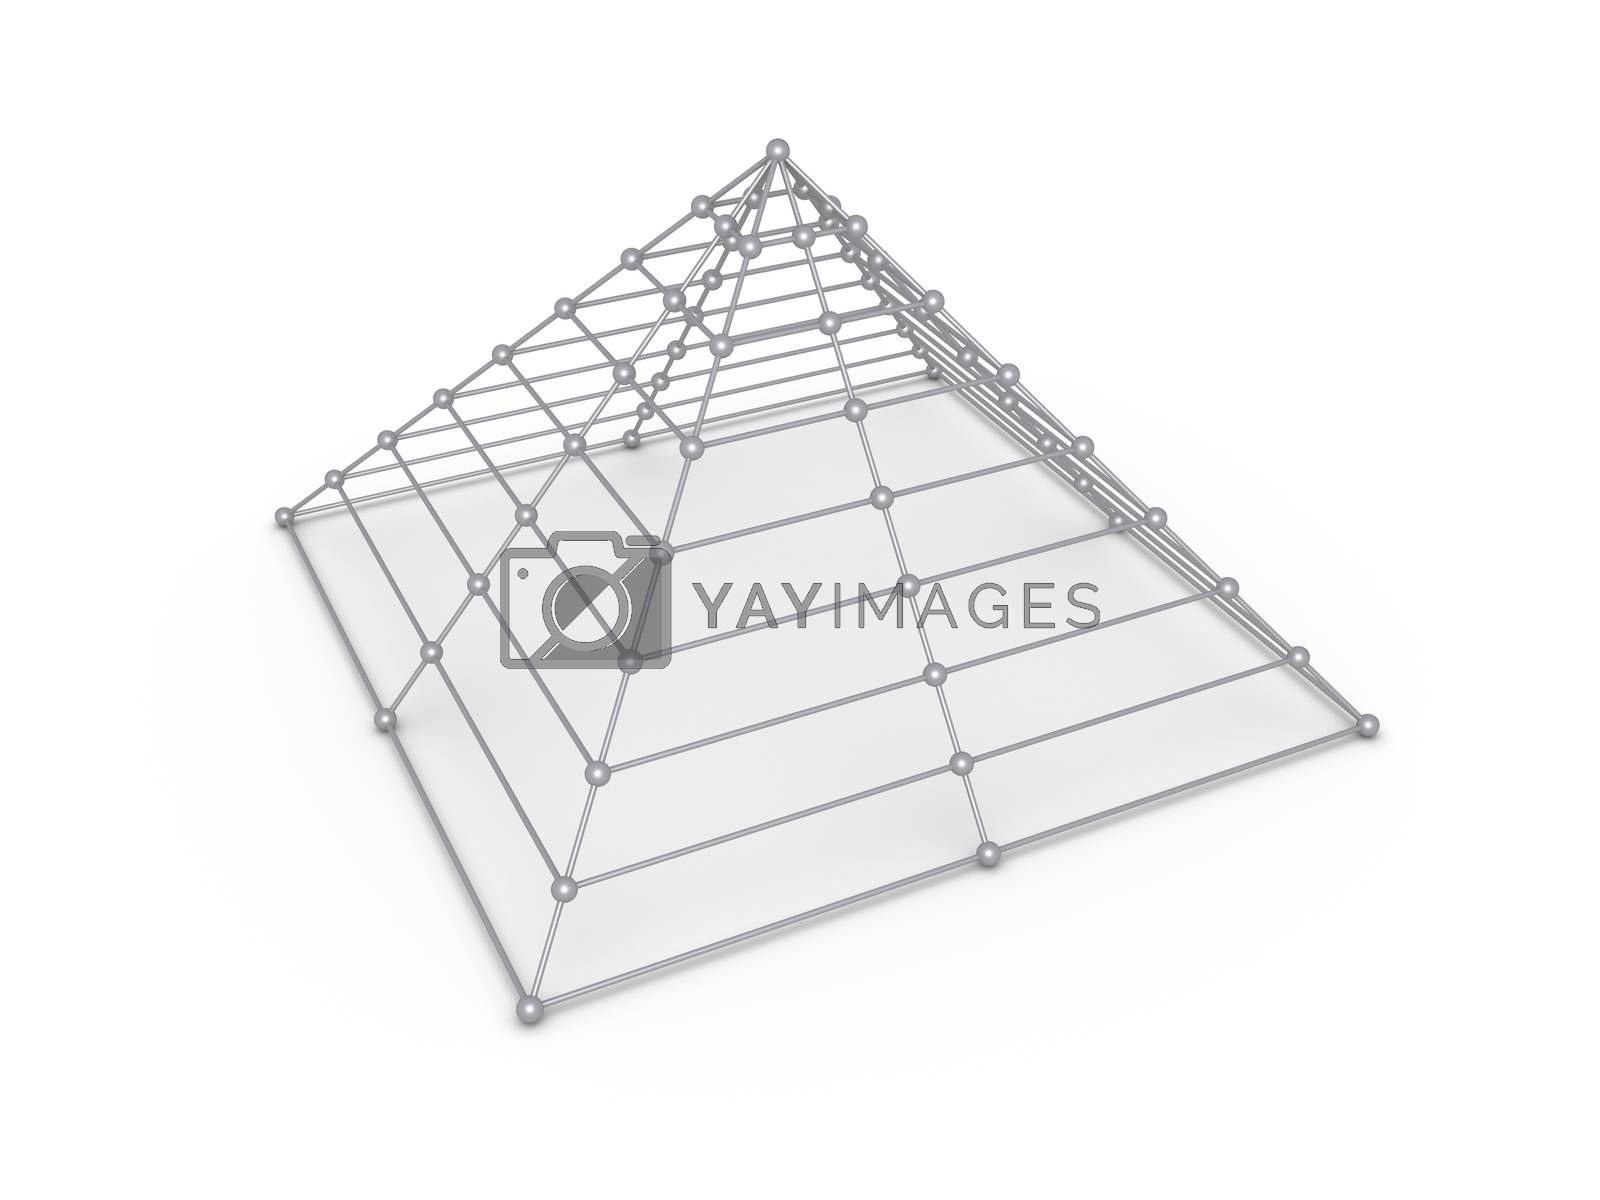 Pyramid construction made of spheres and cylinders